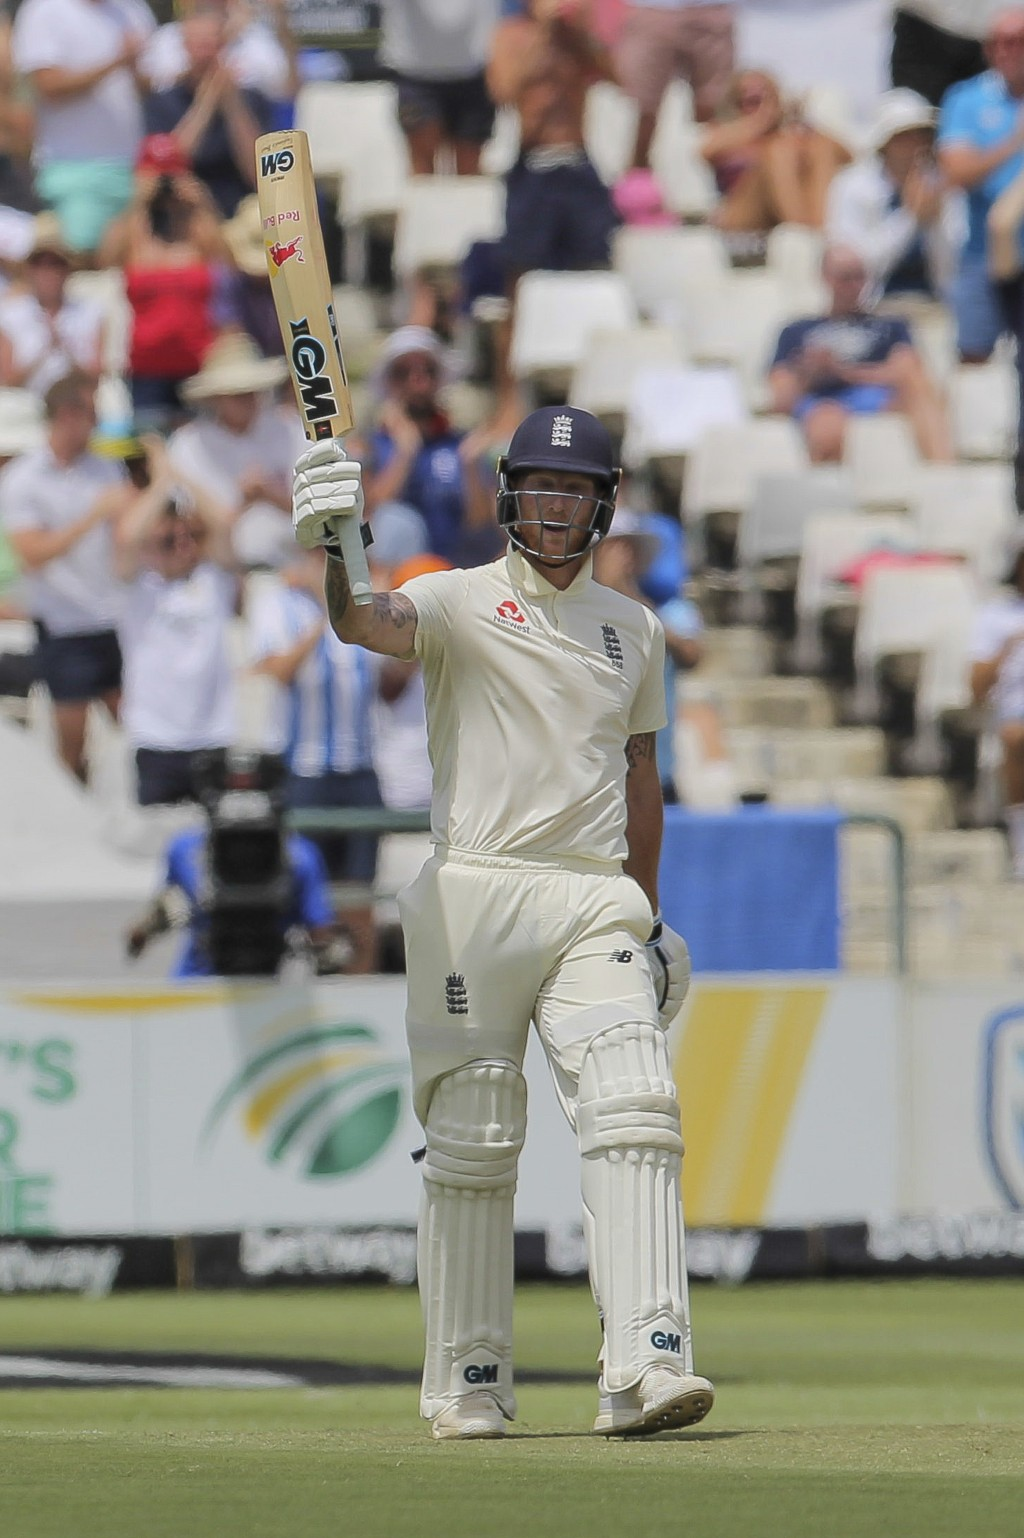 England's batsman Ben Stokes celebrates his fifty during day four of the second cricket test between South Africa and England at the Newlands Cricket ...